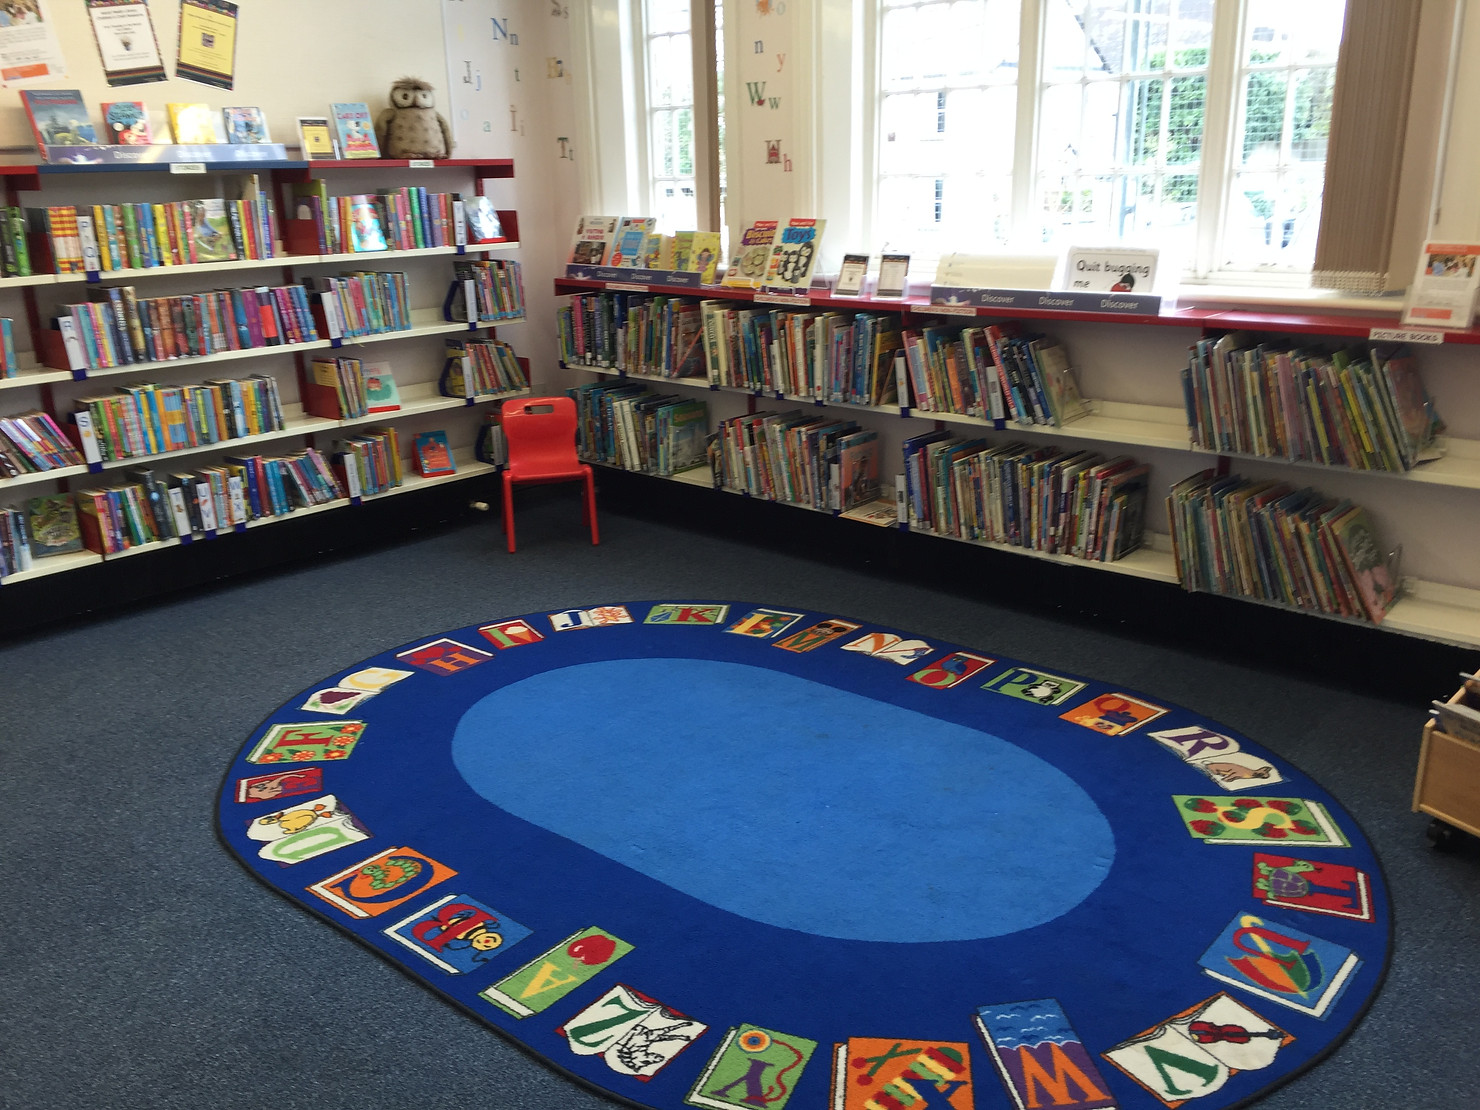 North Ascot Library, Bracknell Forest